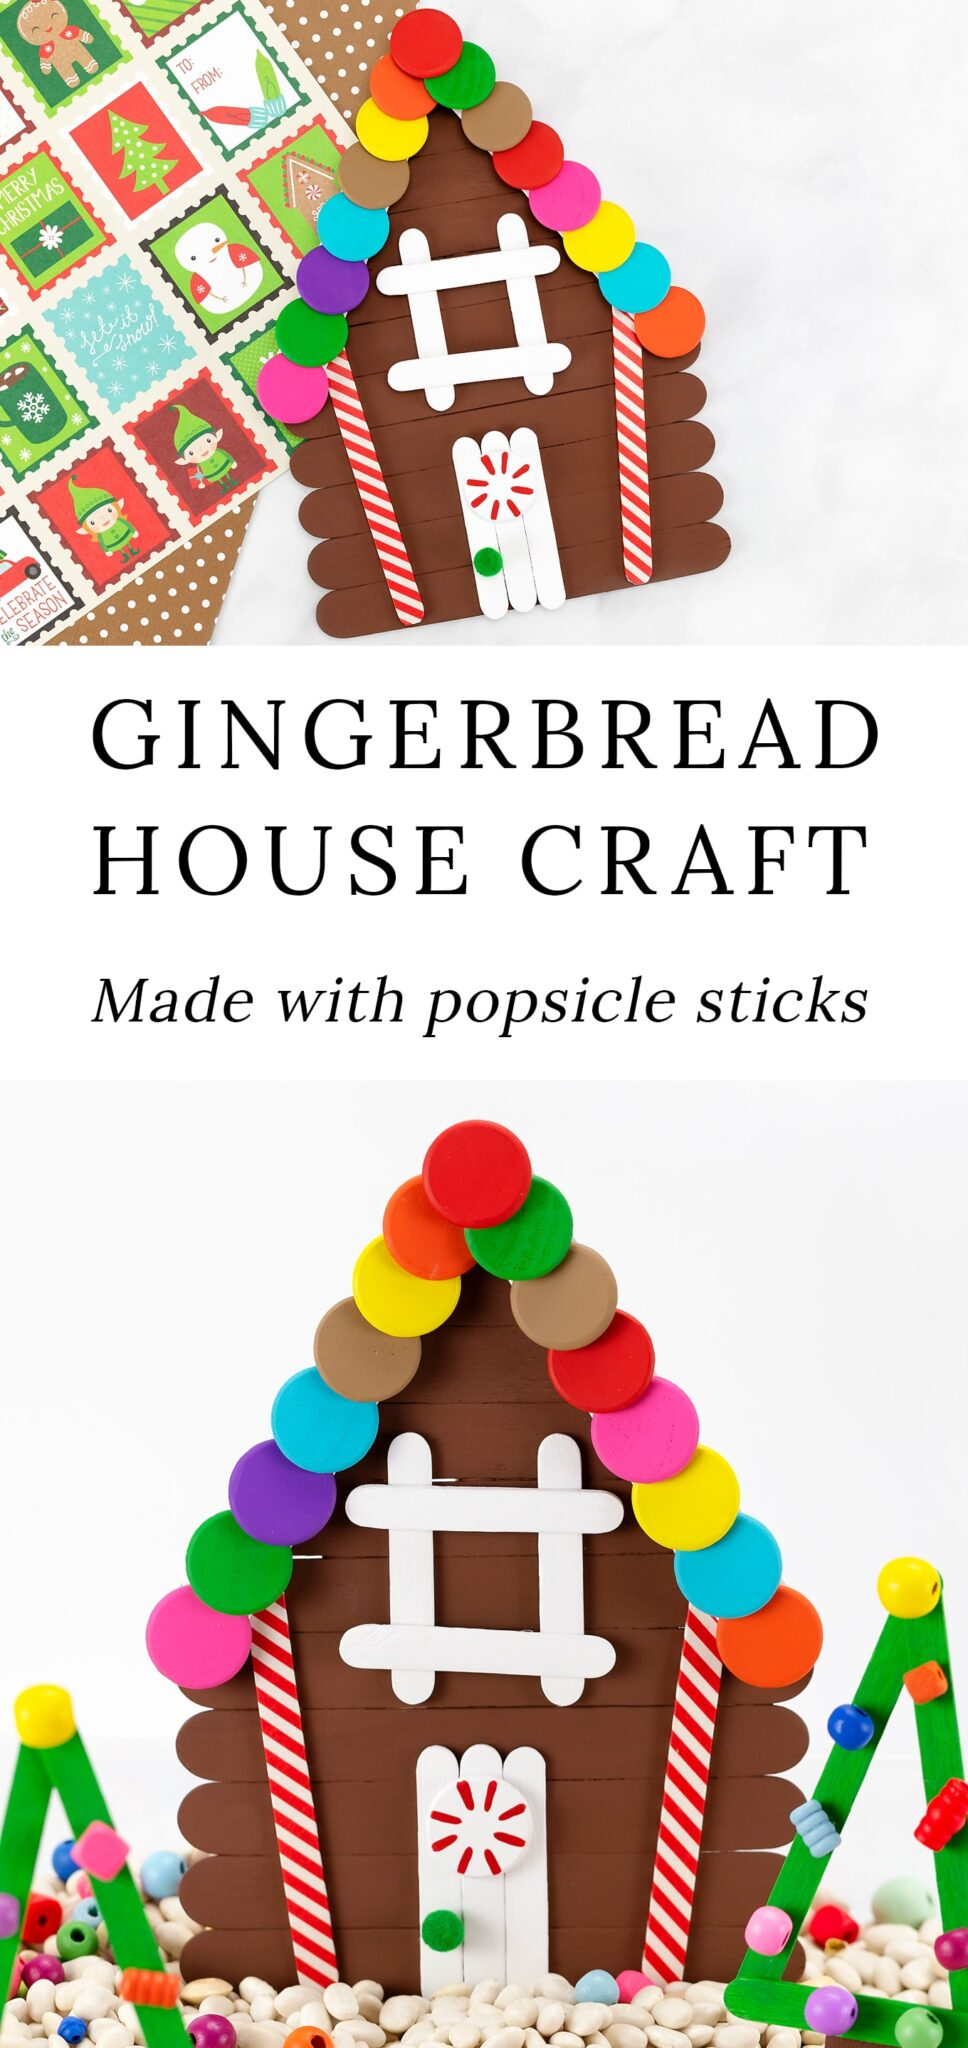 This DIY popsicle stick gingerbread house craft is an easy and fun Christmas craft for kids! Includes a free printable craft pattern and ideas for sensory play. #popsiclestick #gingerbreadhouse #christmas #kids via @firefliesandmudpies